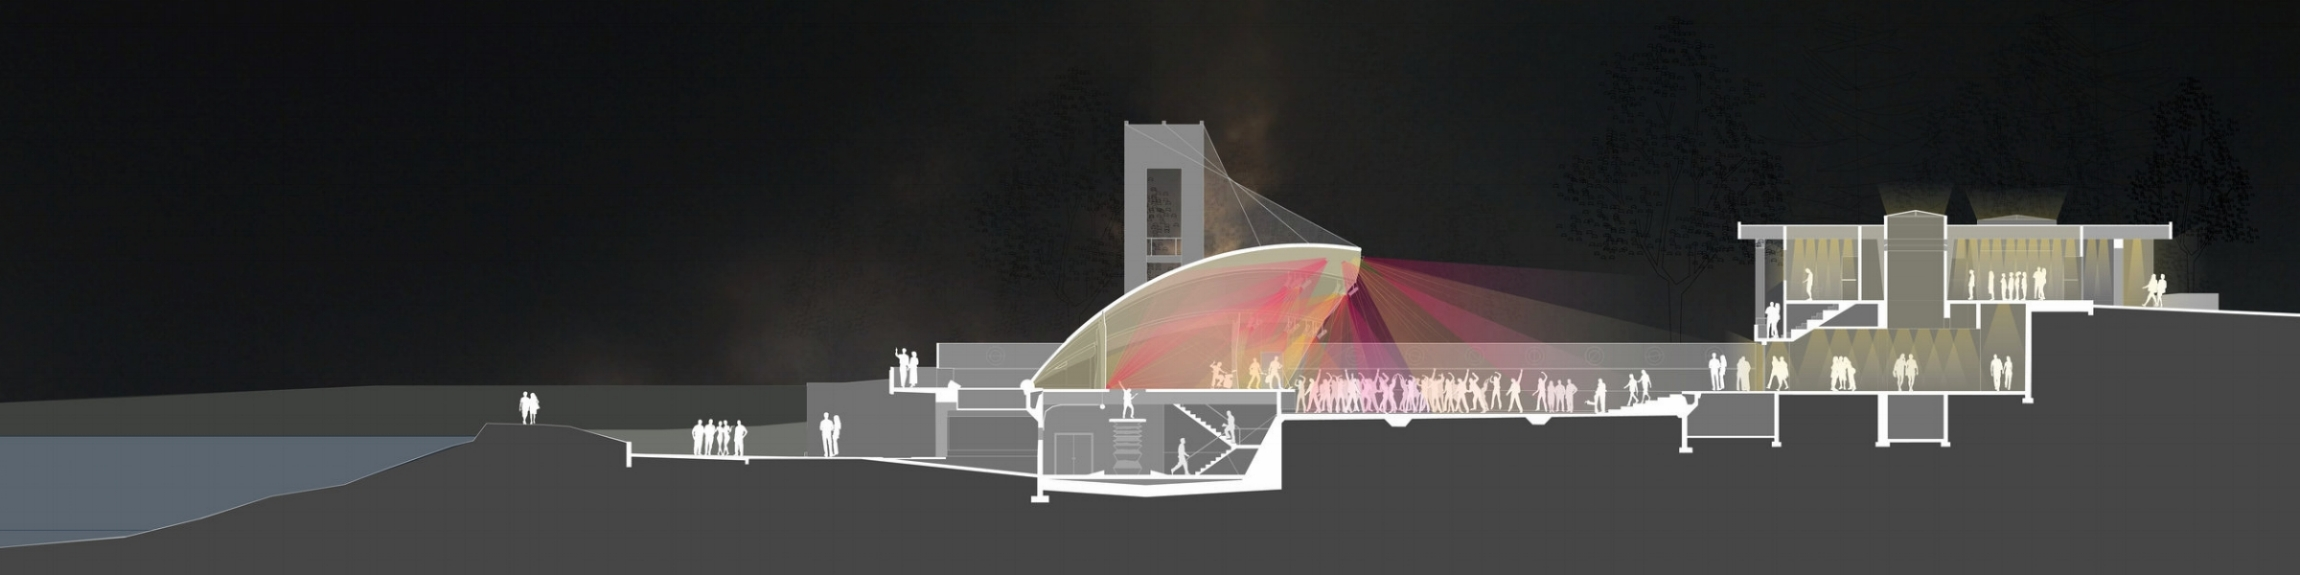 3rd Iteration: Outdoor Performance Venue and Restaurant